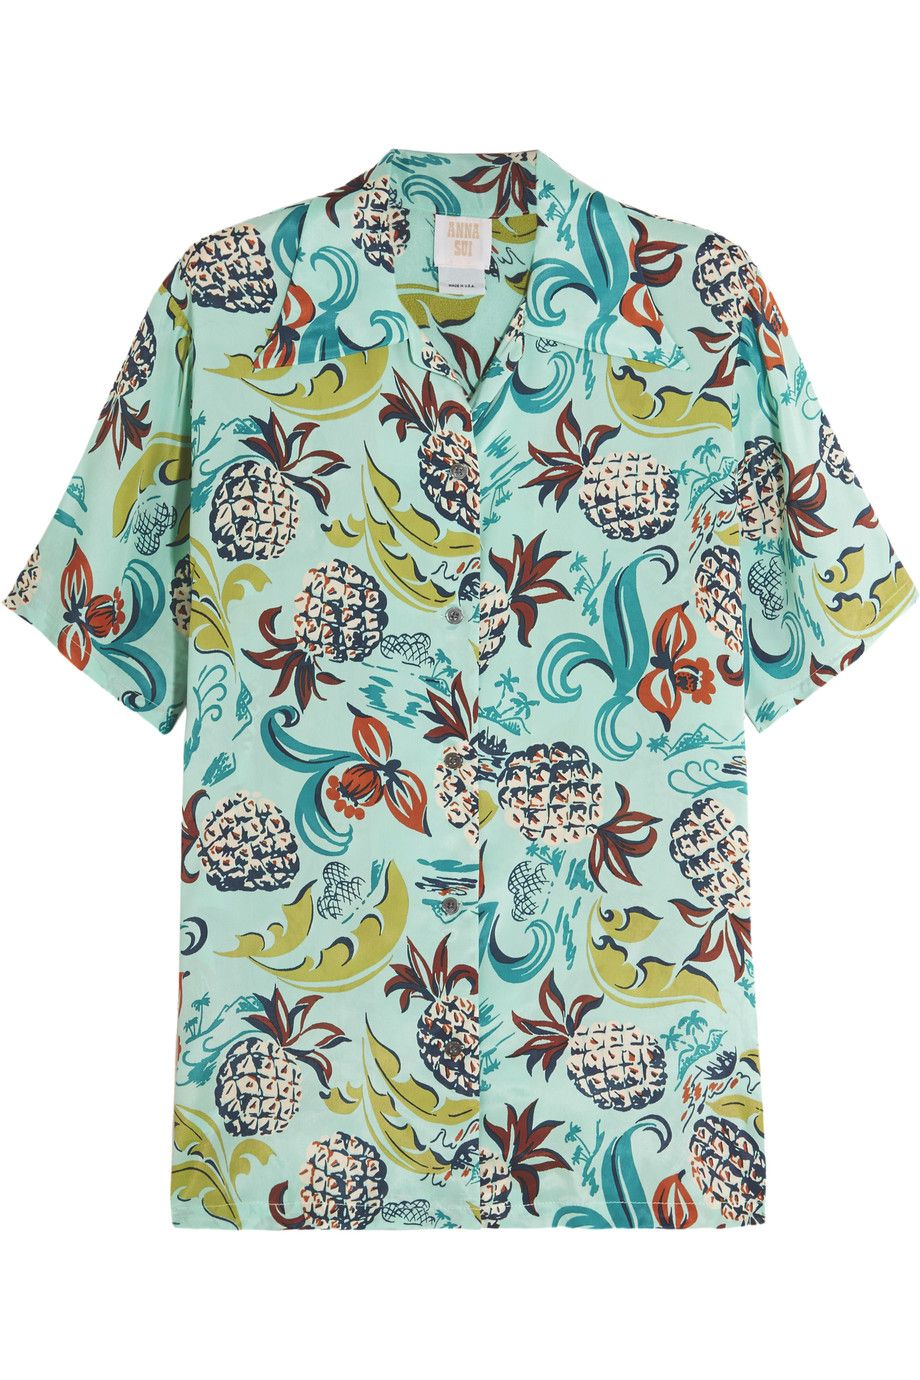 """<p> Anna Sui Printed Crepe de Chine Shirt, $162; <a href=""""https://www.theoutnet.com/en-US/Shop/Product/Anna-Sui/Printed-crepe-de-chine-shirt/721293"""">theoutnet.com</a><span class=""""redactor-invisible-space"""" data-verified=""""redactor"""" data-redactor-tag=""""span"""" data-redactor-class=""""redactor-invisible-space""""></span></p>"""